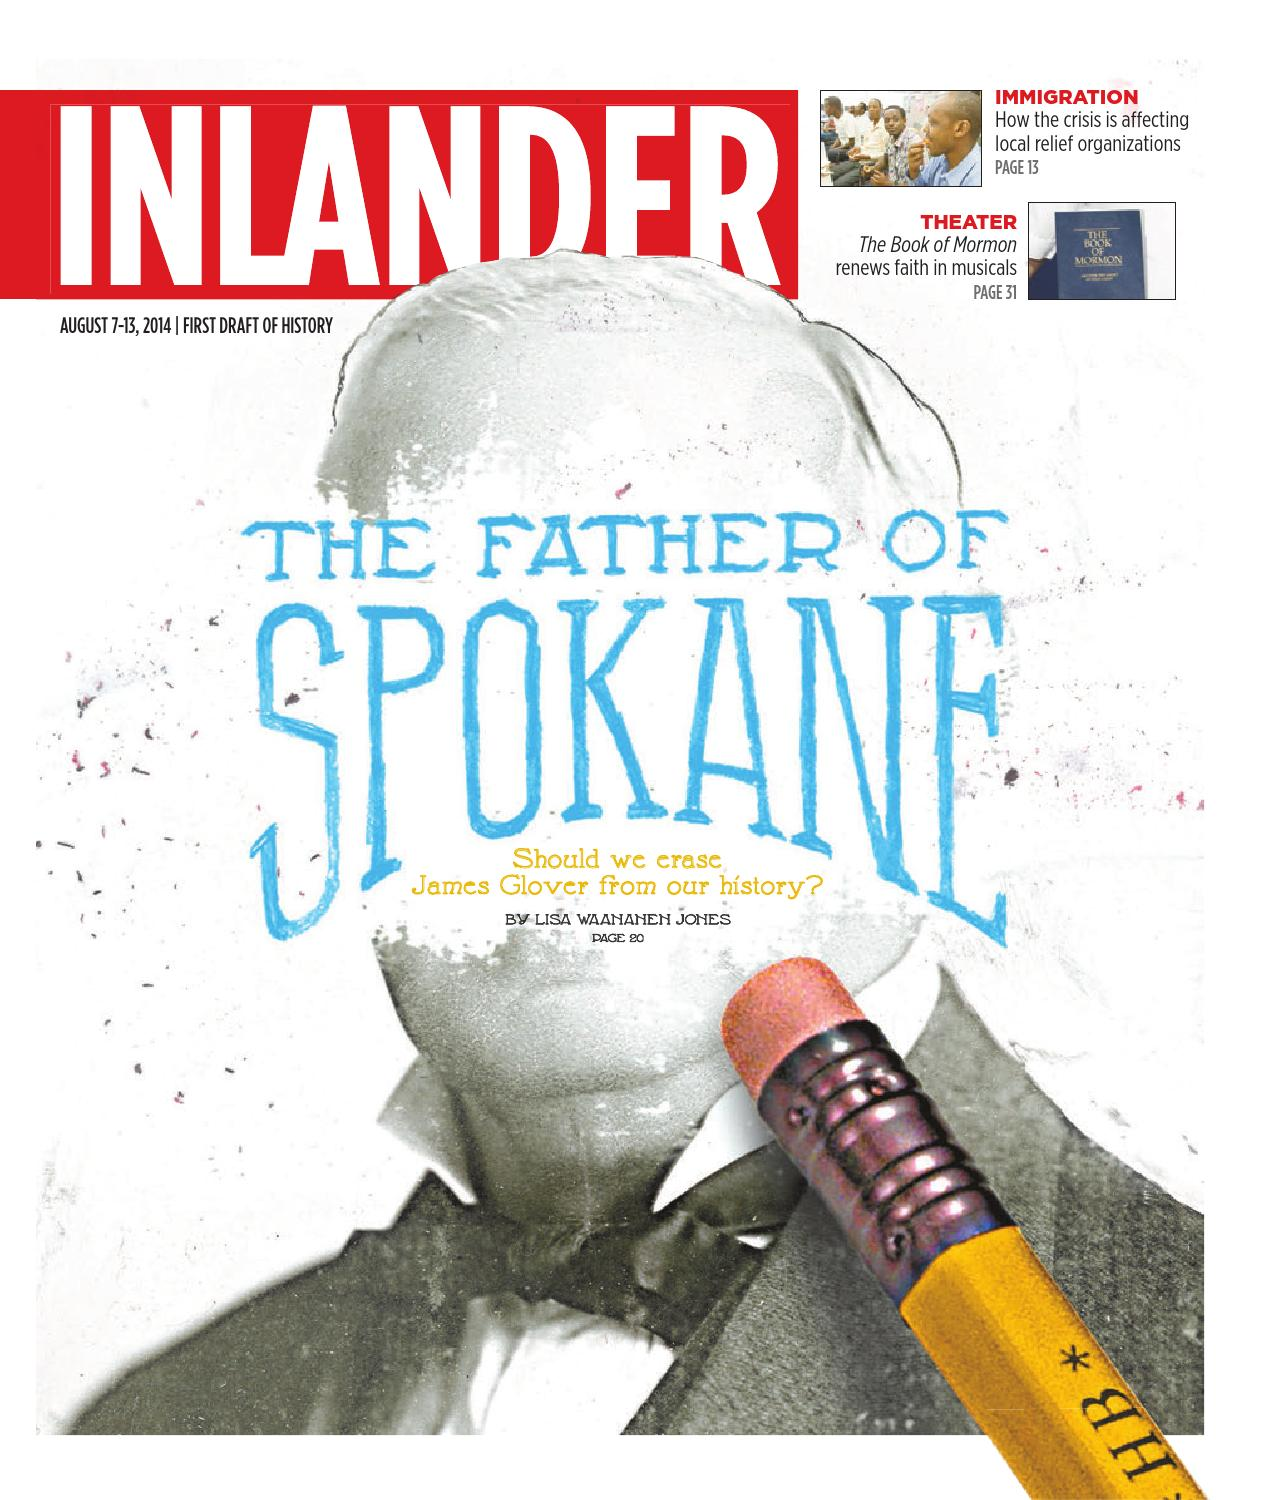 Inlander 08 07 2014 by The Inlander - issuu 0ac1d97549